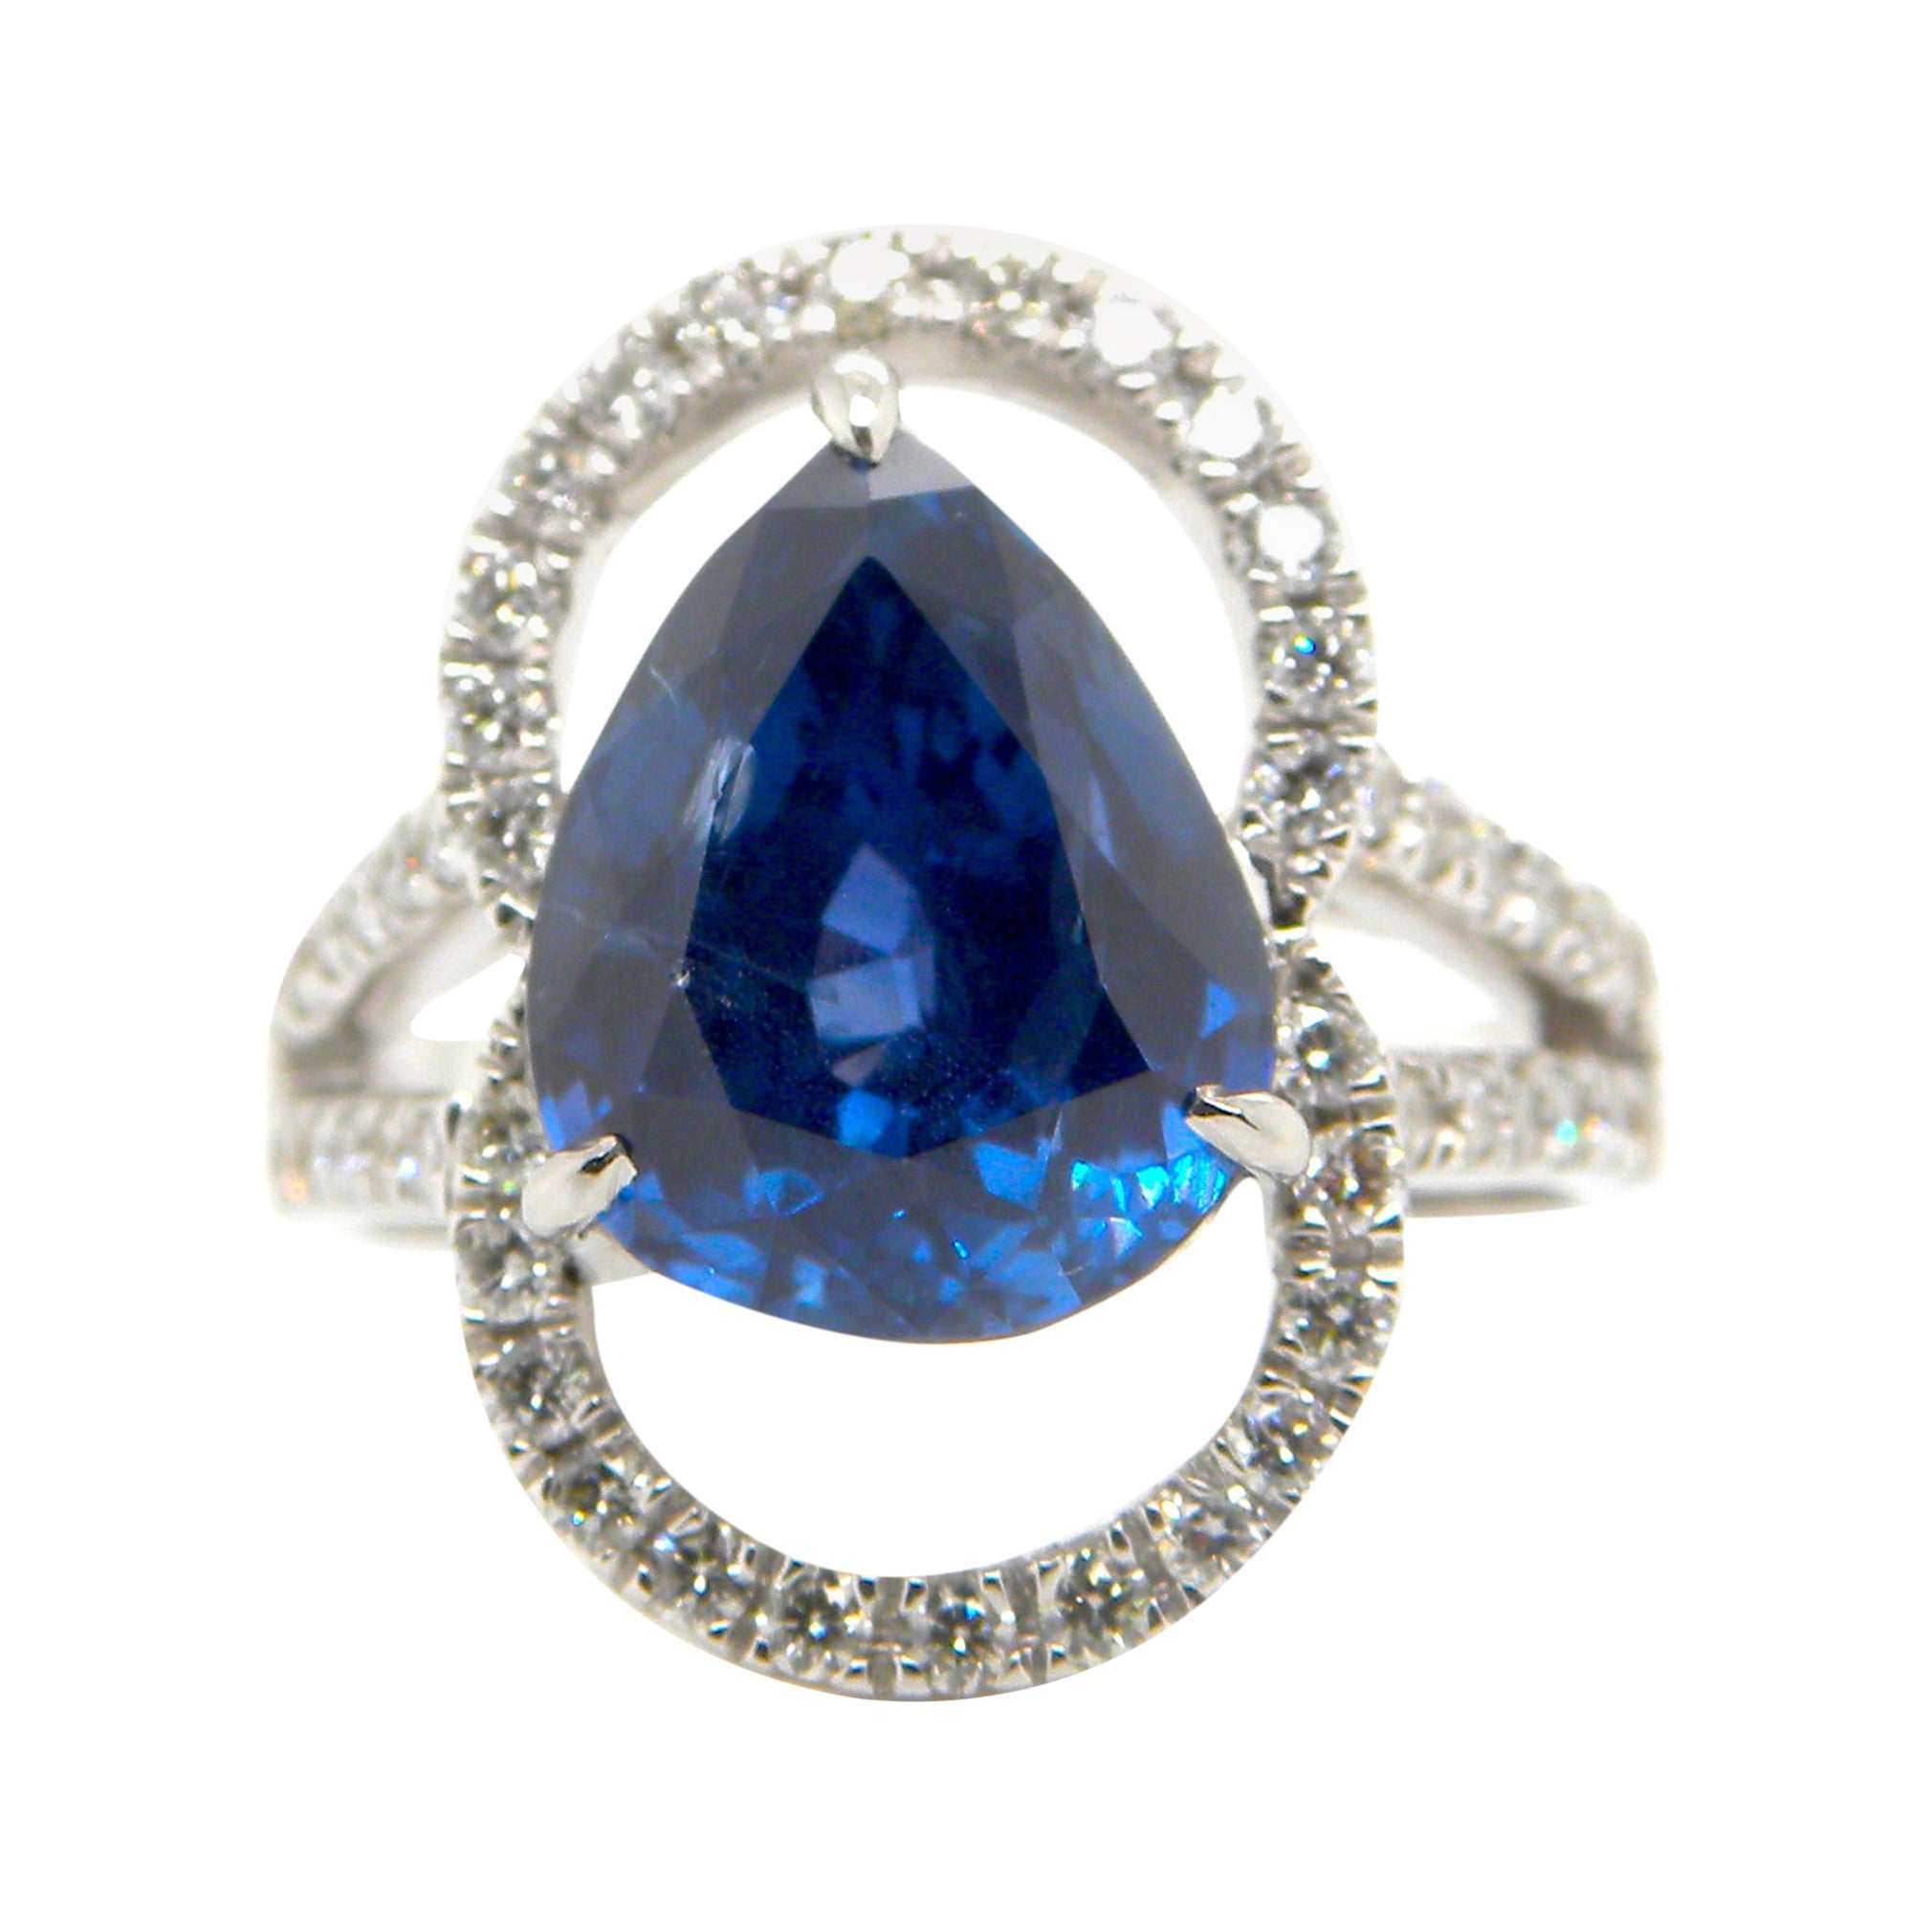 6.07 Carat GRS Certified Unheated Burmese Sapphire and White Diamond Ring